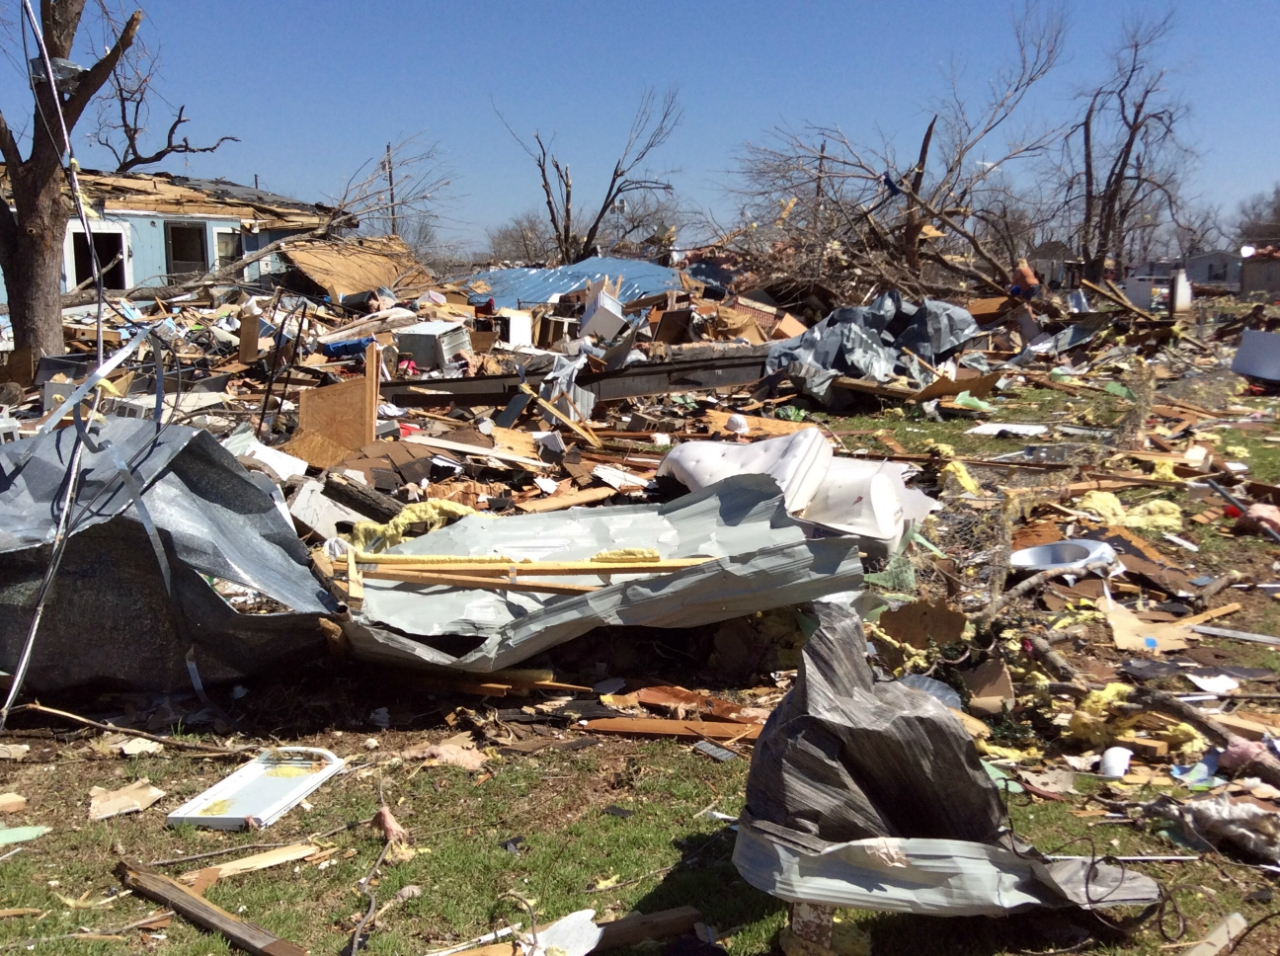 moble home and tree damage. Image: NWS Tulsa